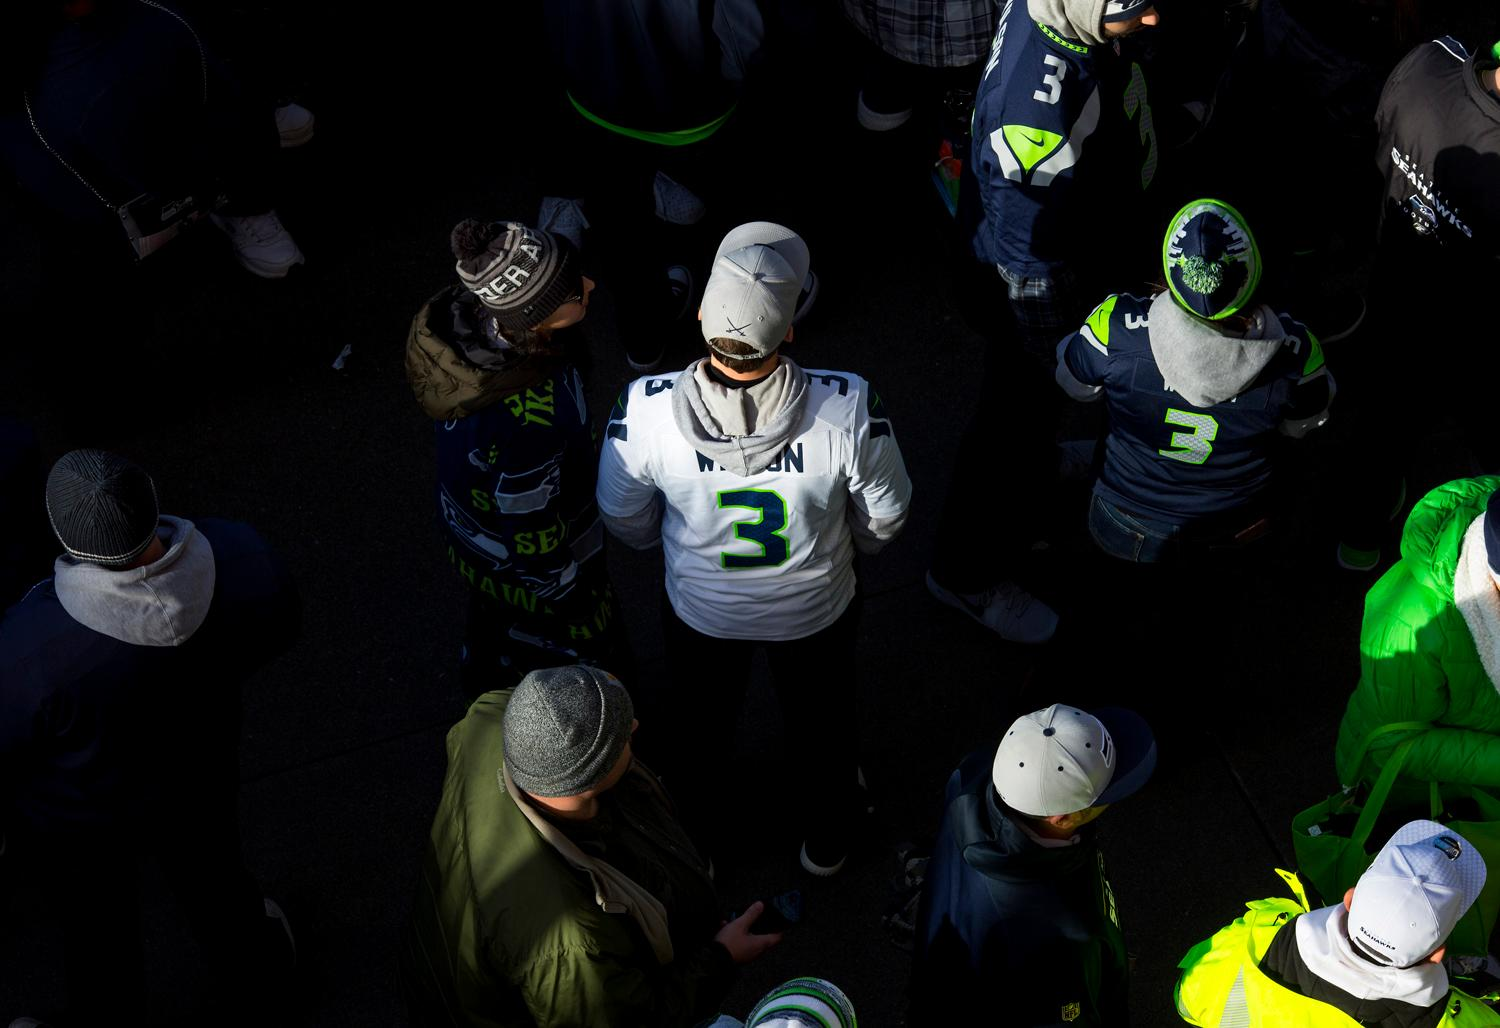 The sun came down on Seattle Seahawks fans as the hawks compete against the Arizona Cardinals during the last regular season game on New Year's Eve day at CenturyLink Field in Seattle. The Cardinals lead the half, 20-7. (Sy Bean / Seattle Refined)